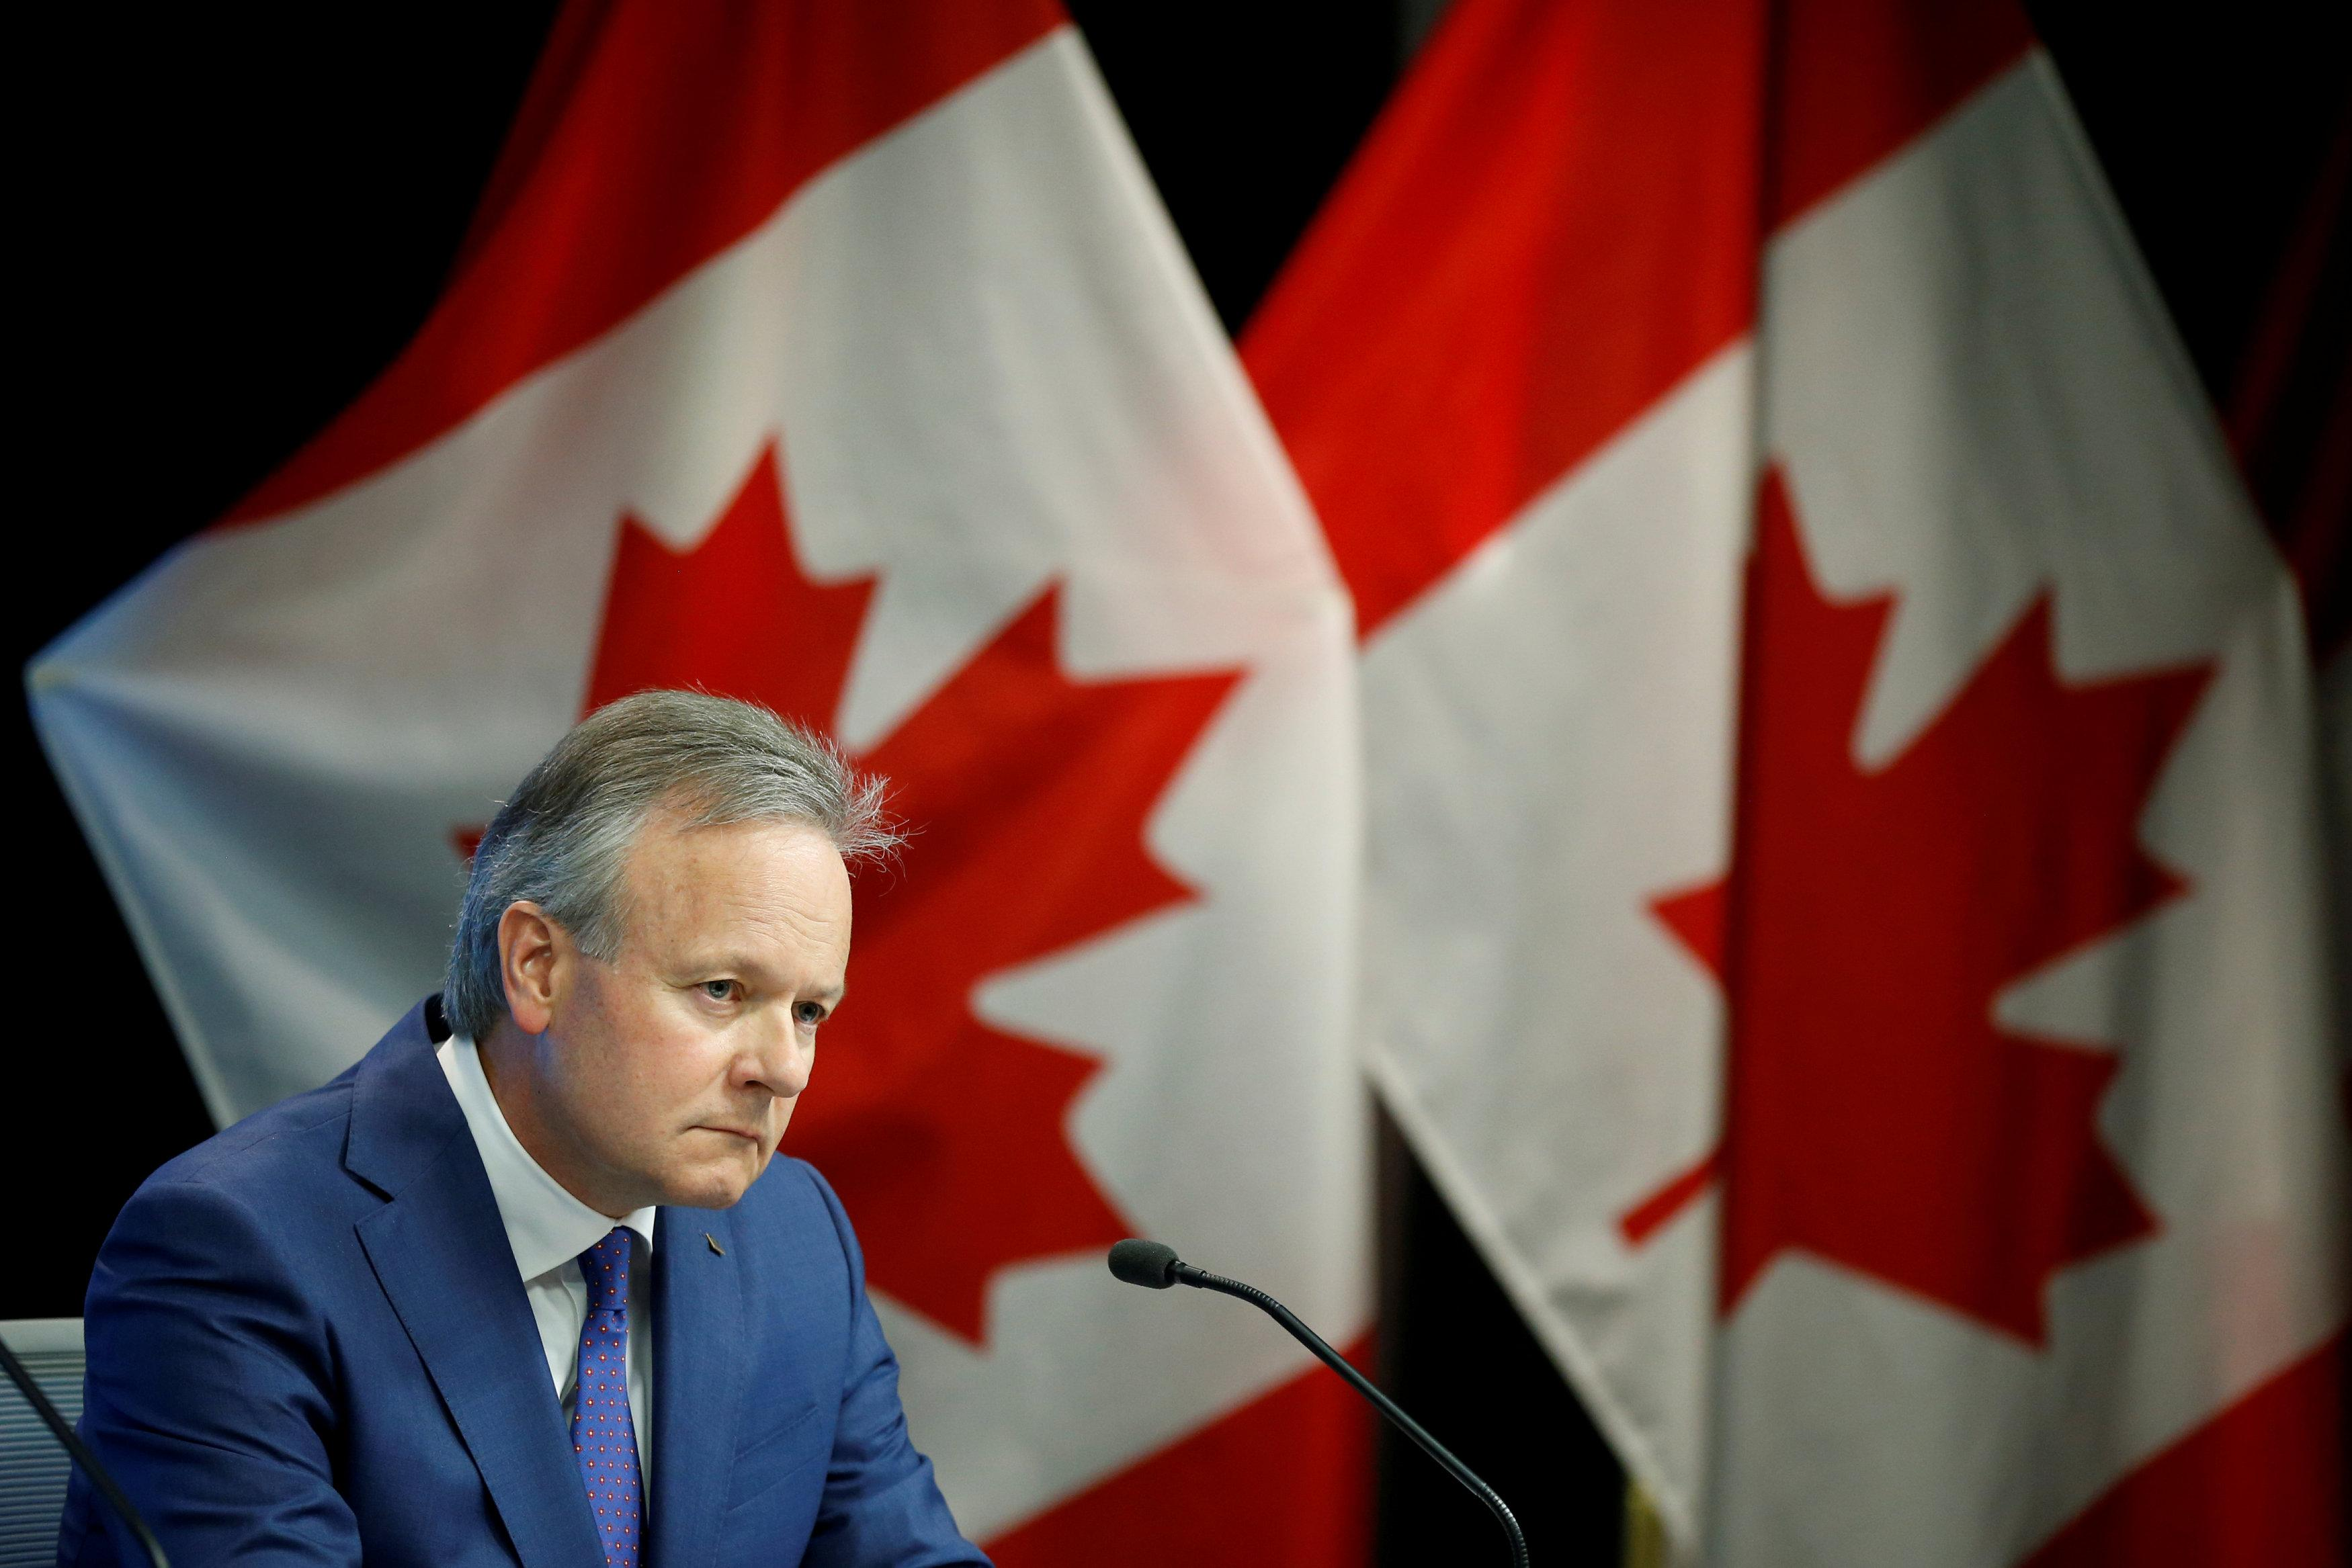 Bank of Canada Governor Stephen Poloz listens to a question during a news conference in Ottawa, Ontario, Canada, July 11, 2018. Chris Wattie